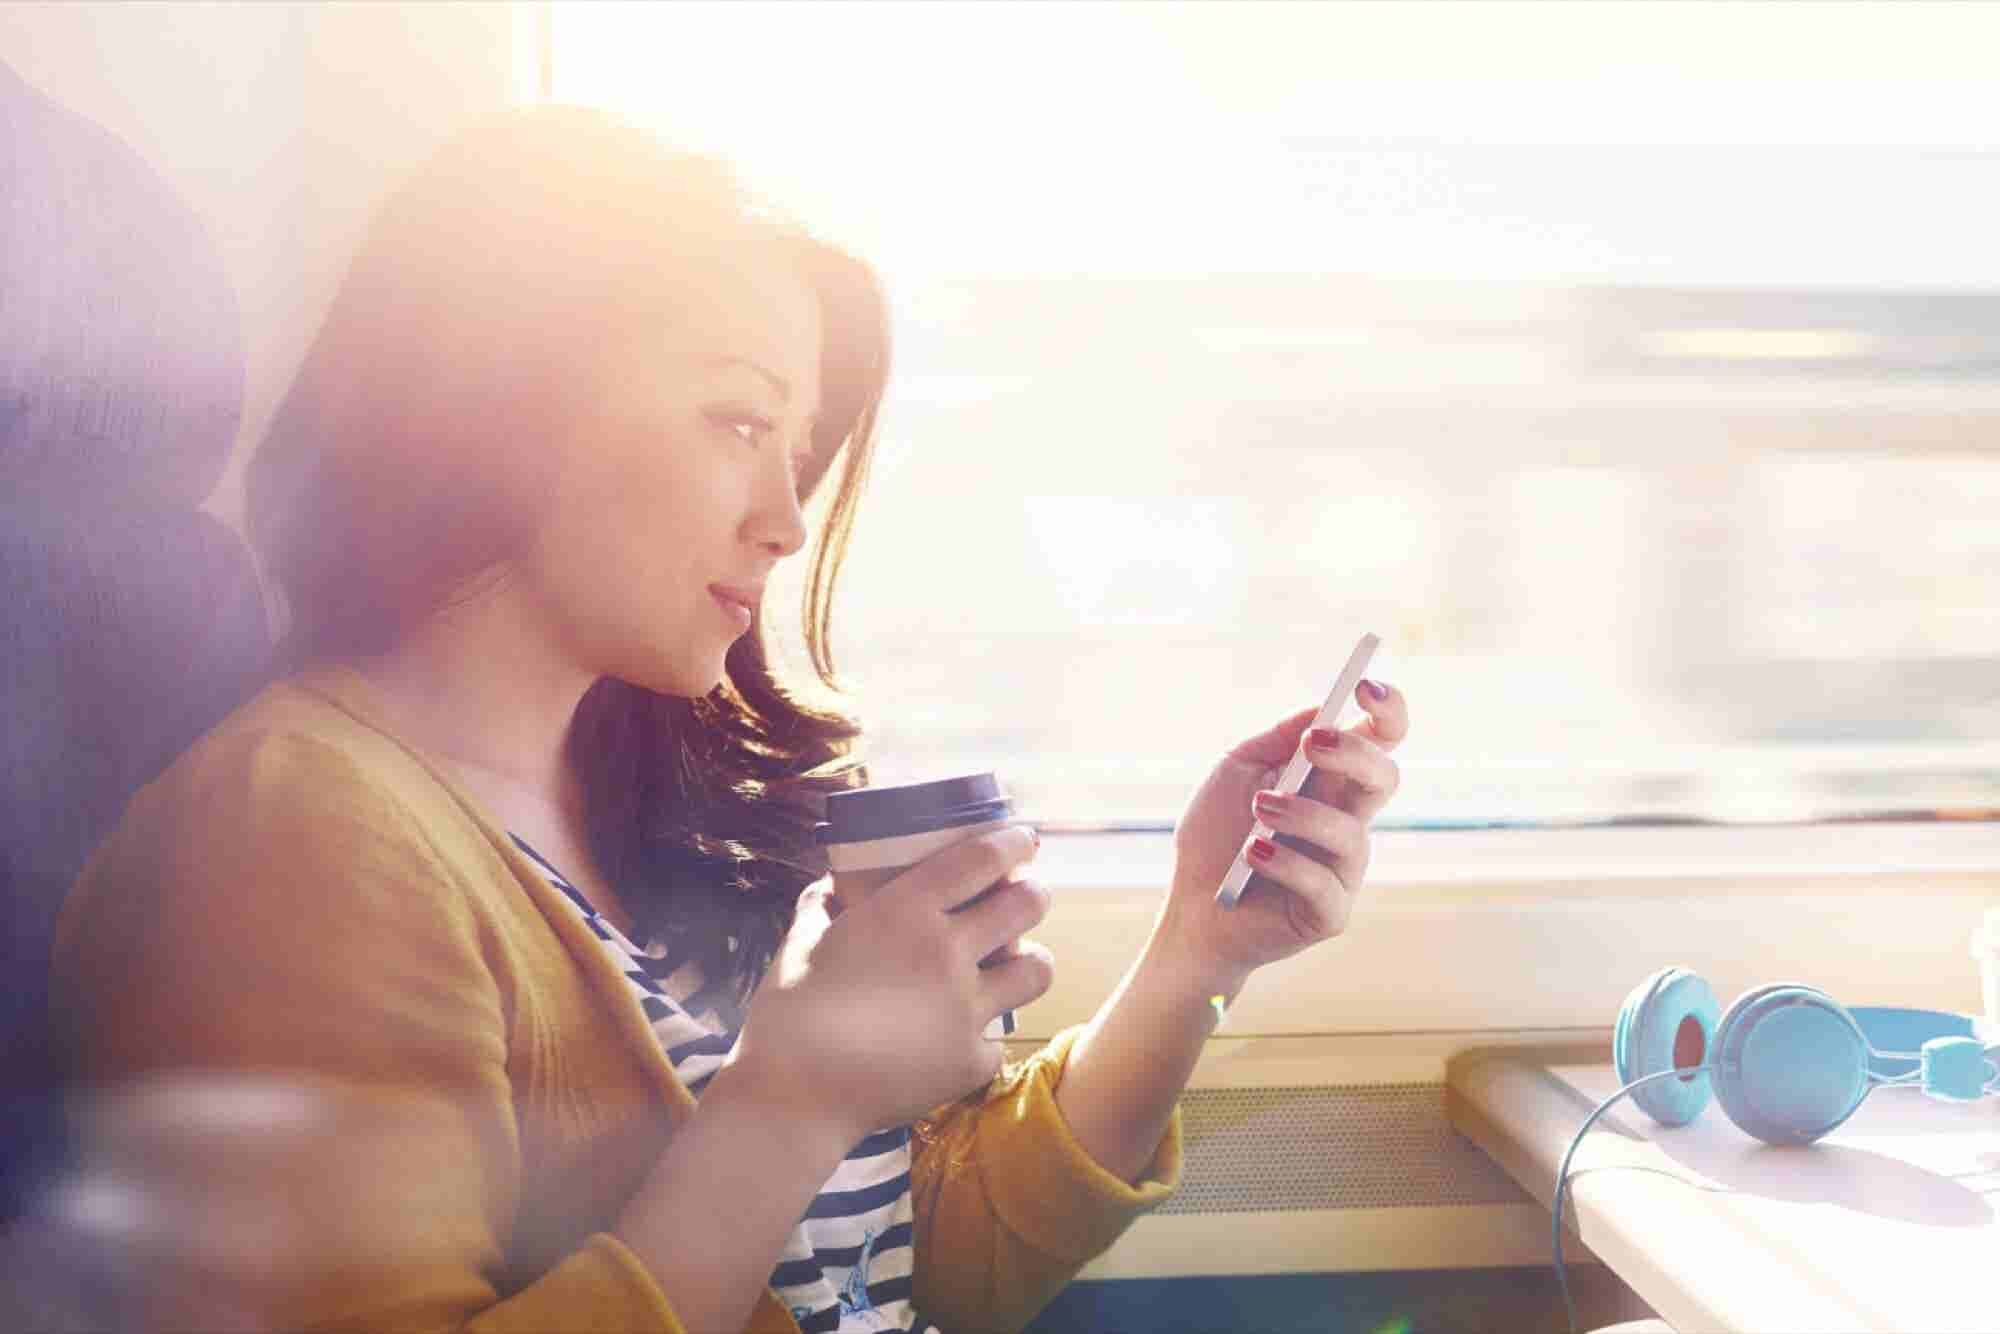 Delight (Rather Than Irritate) Your Mobile Customers Using These 5 Tip...